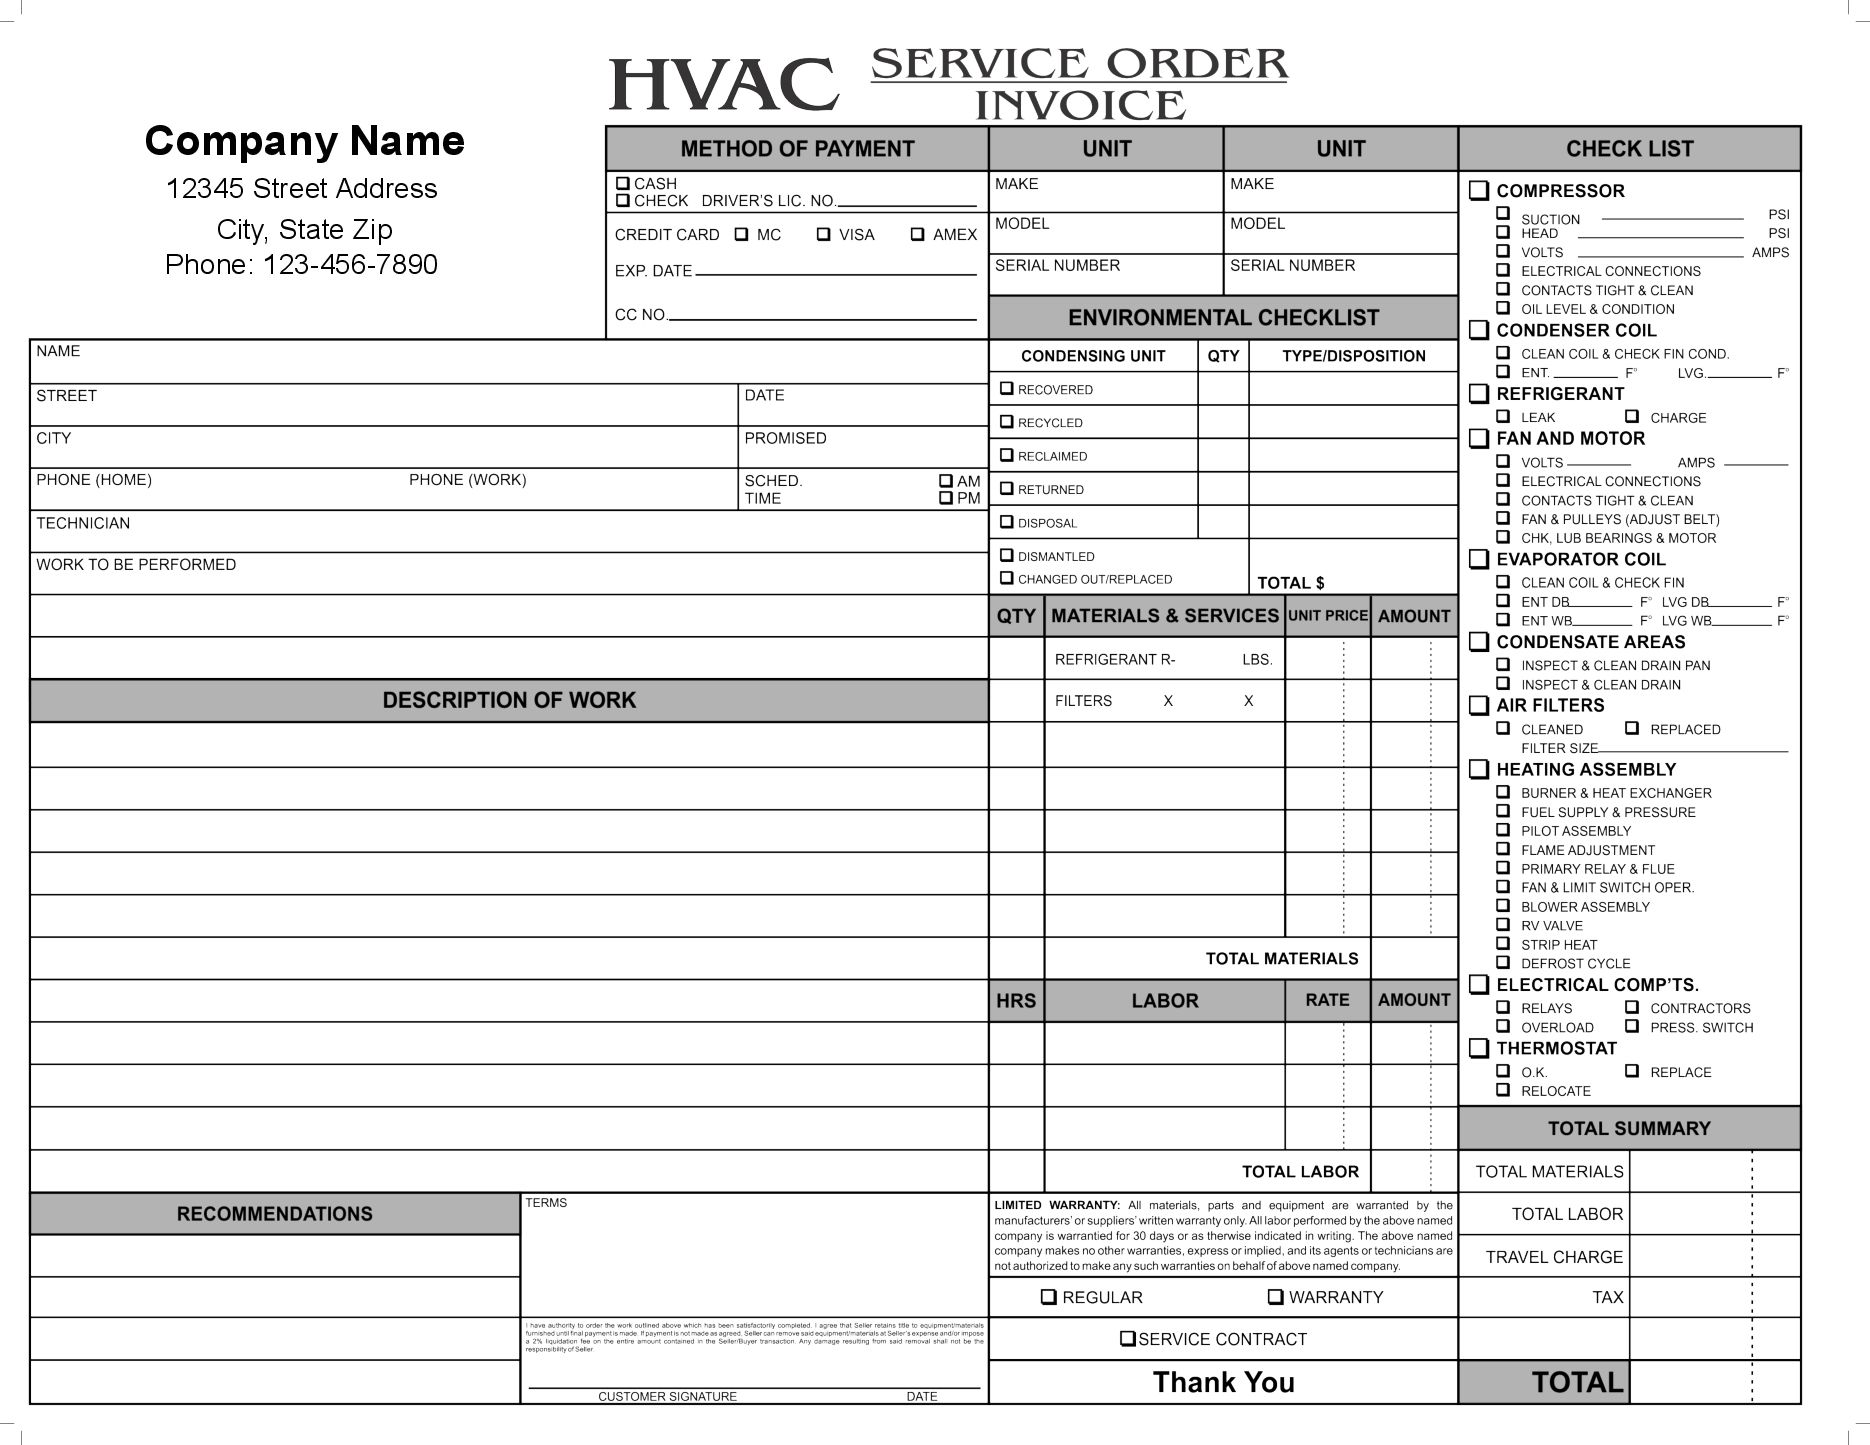 11 hvac invoice template free top invoice templates hvac invoice 11 hvac invoice template free top invoice templates hvac invoice template flashek Images